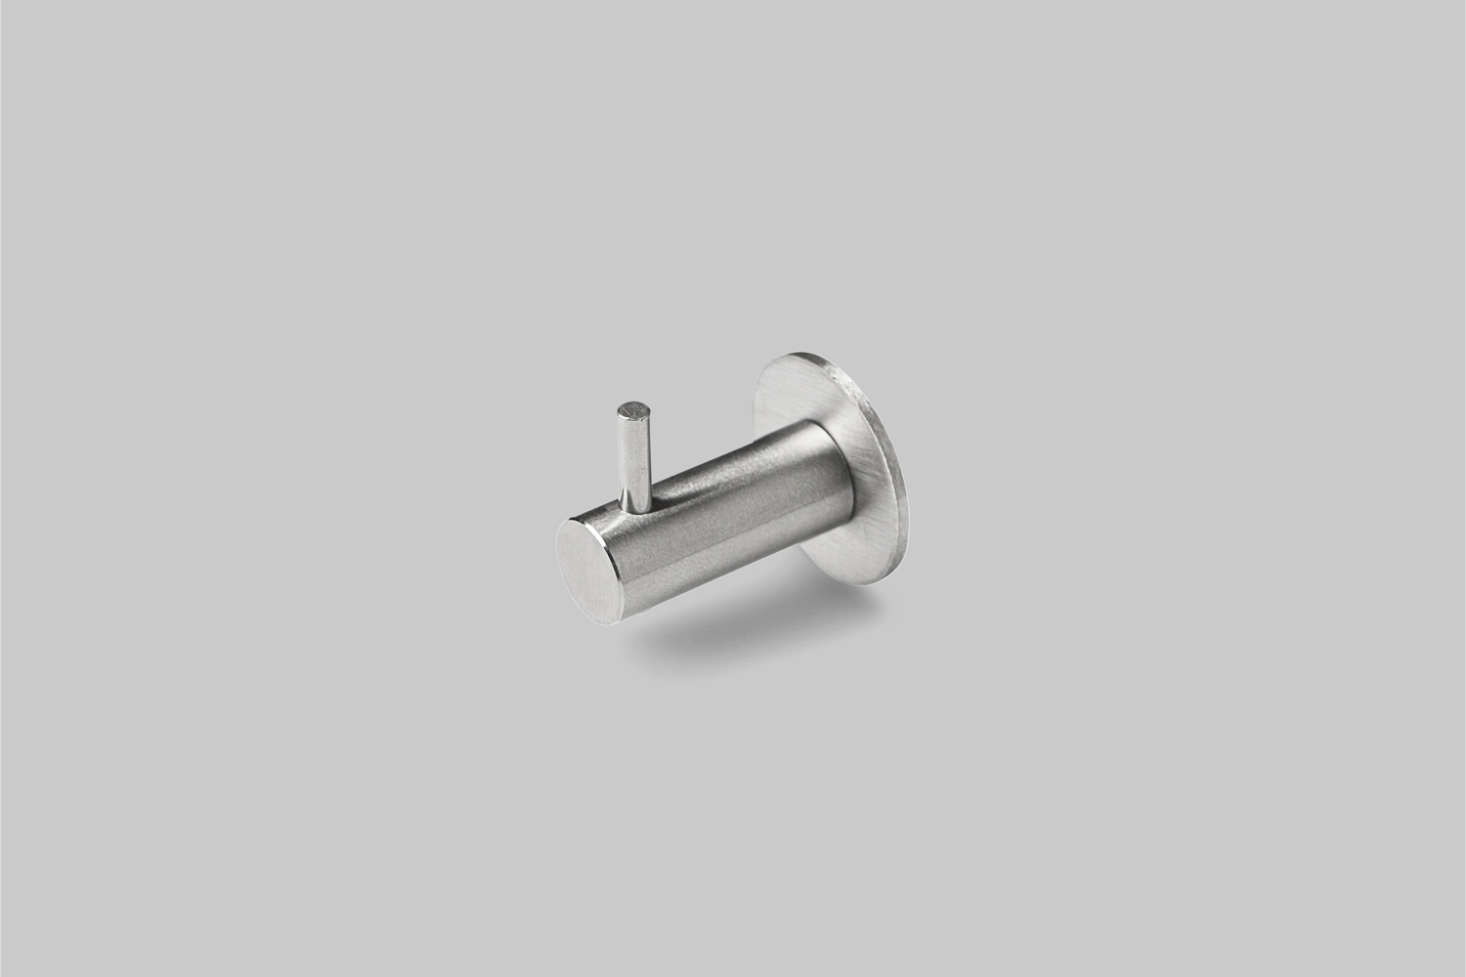 The D-Line Knud Coat Hook with Pin, in satin or polished nickel, is $68 at Casson Hardware.See the hook in action in Design Sleuth: D-Line Hardware from Denmark.